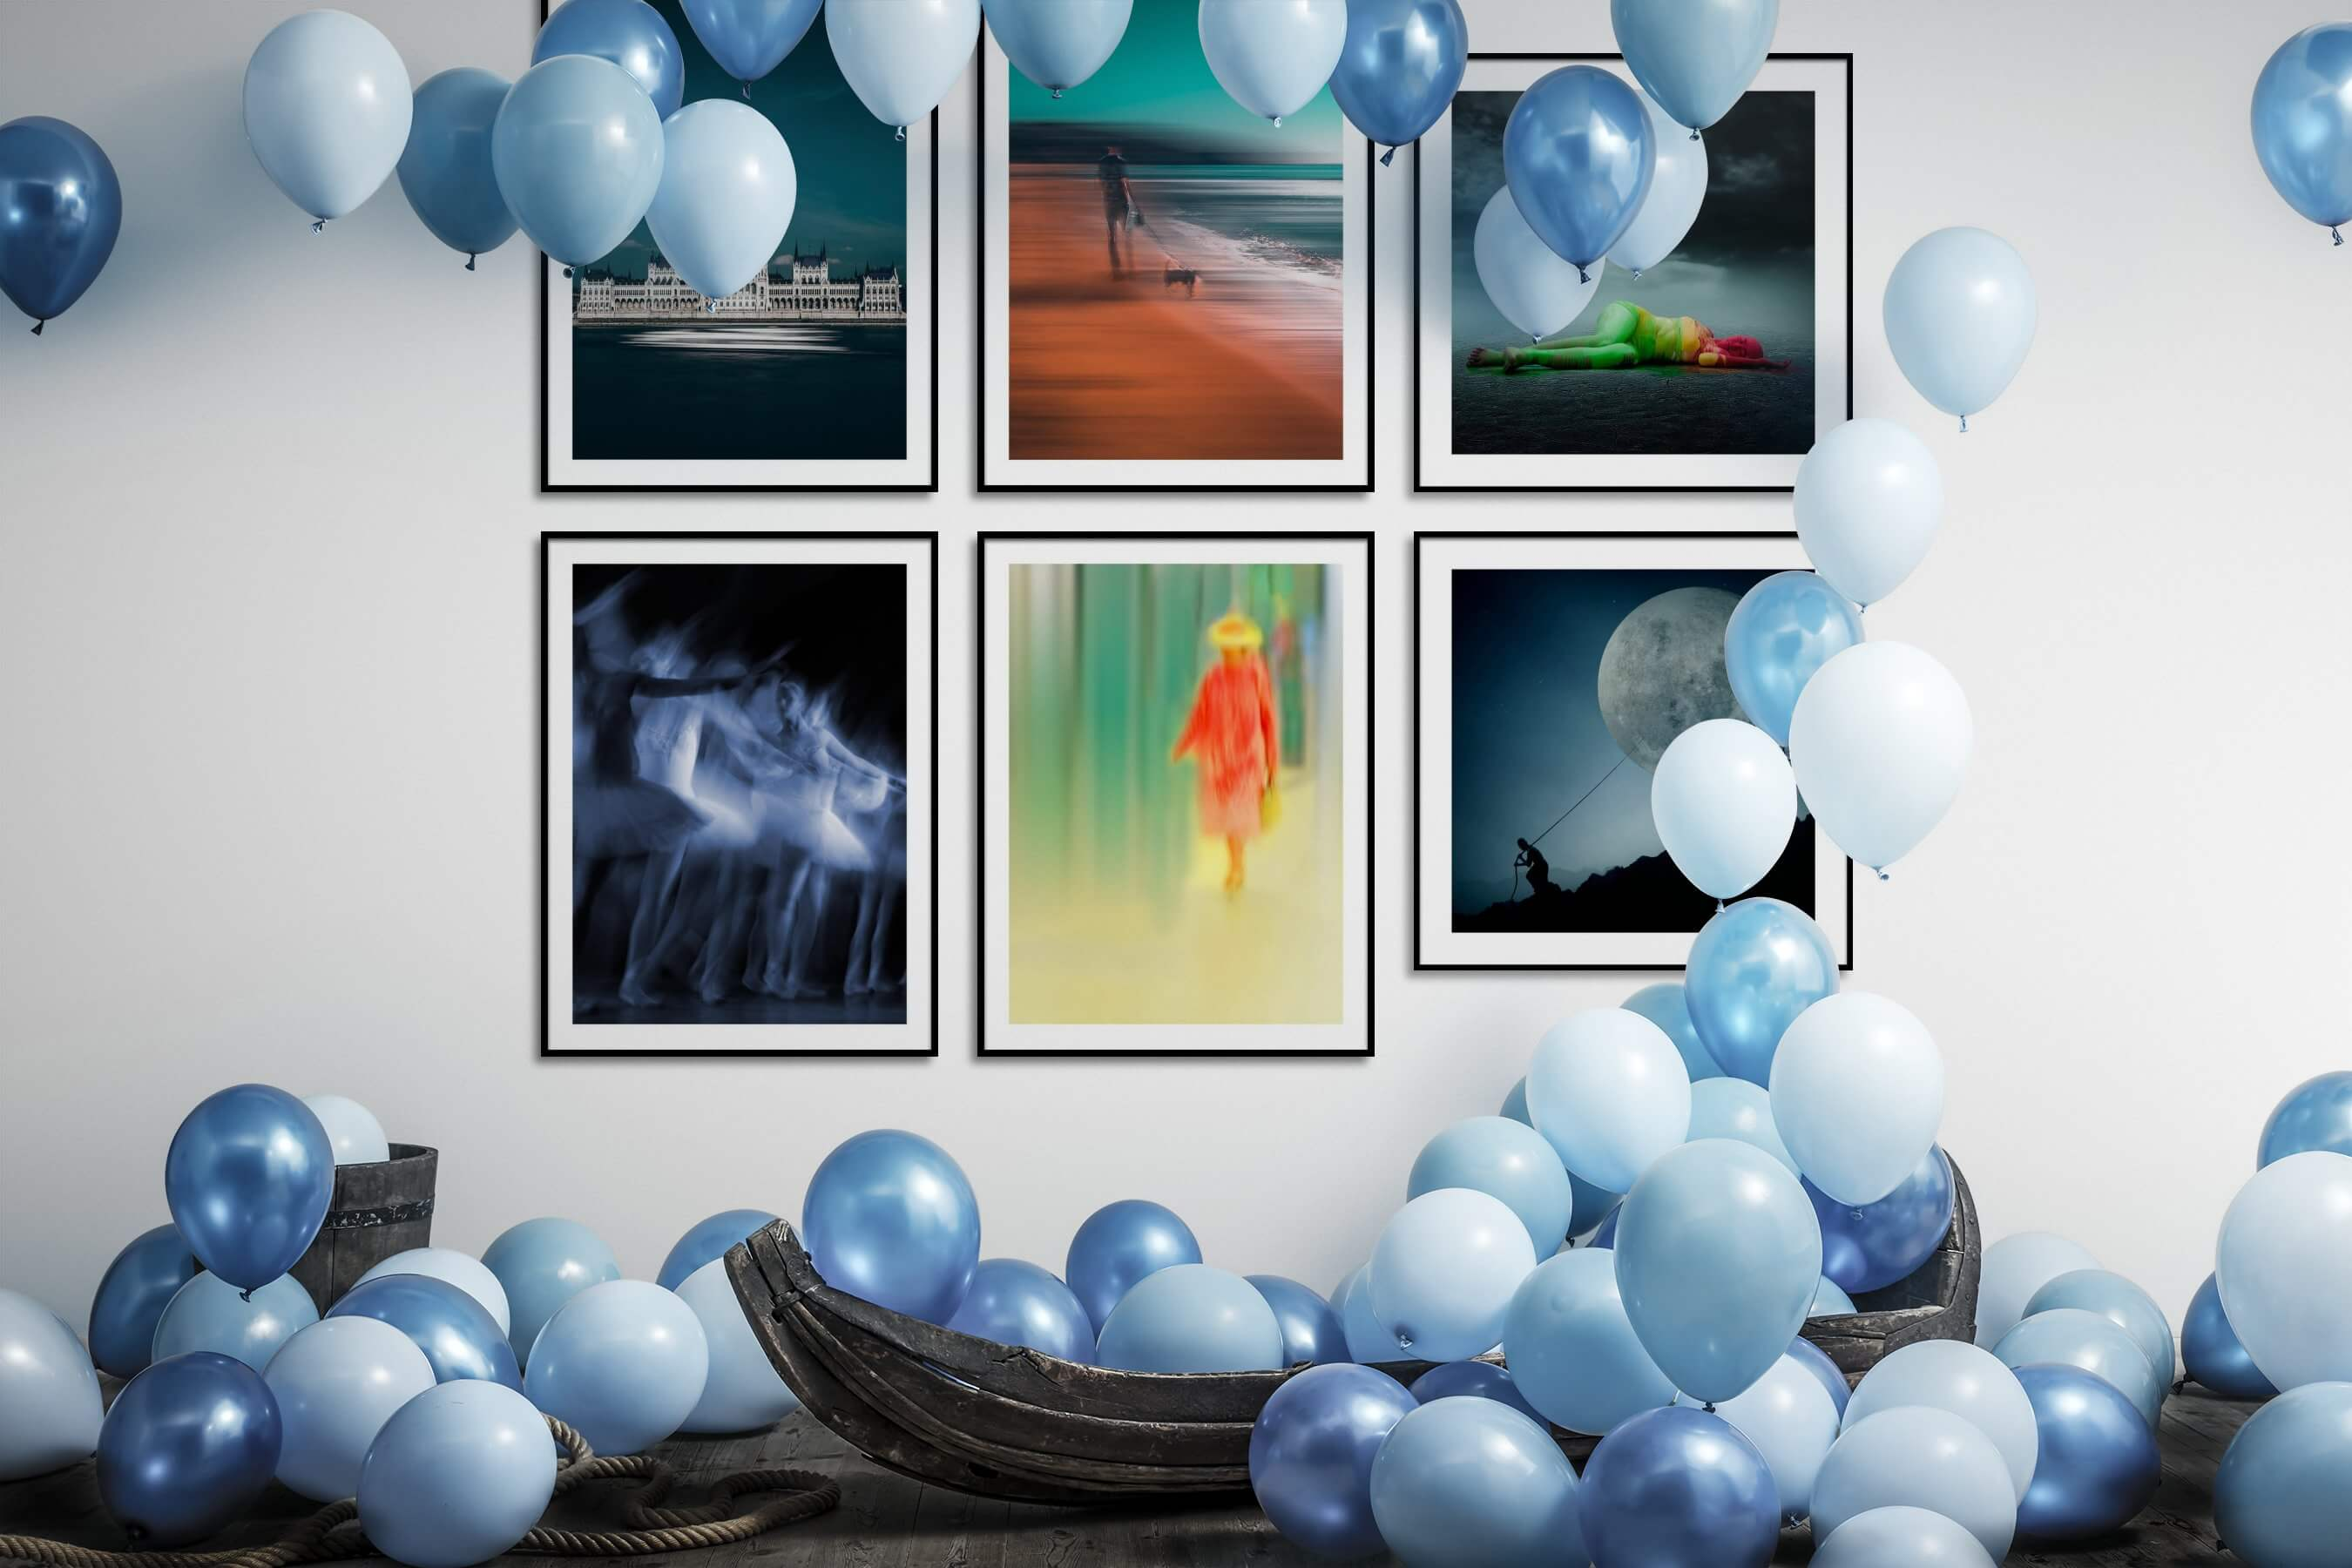 Gallery wall idea with six framed pictures arranged on a wall depicting For the Minimalist, City Life, For the Moderate, Beach & Water, Fashion & Beauty, and Artsy